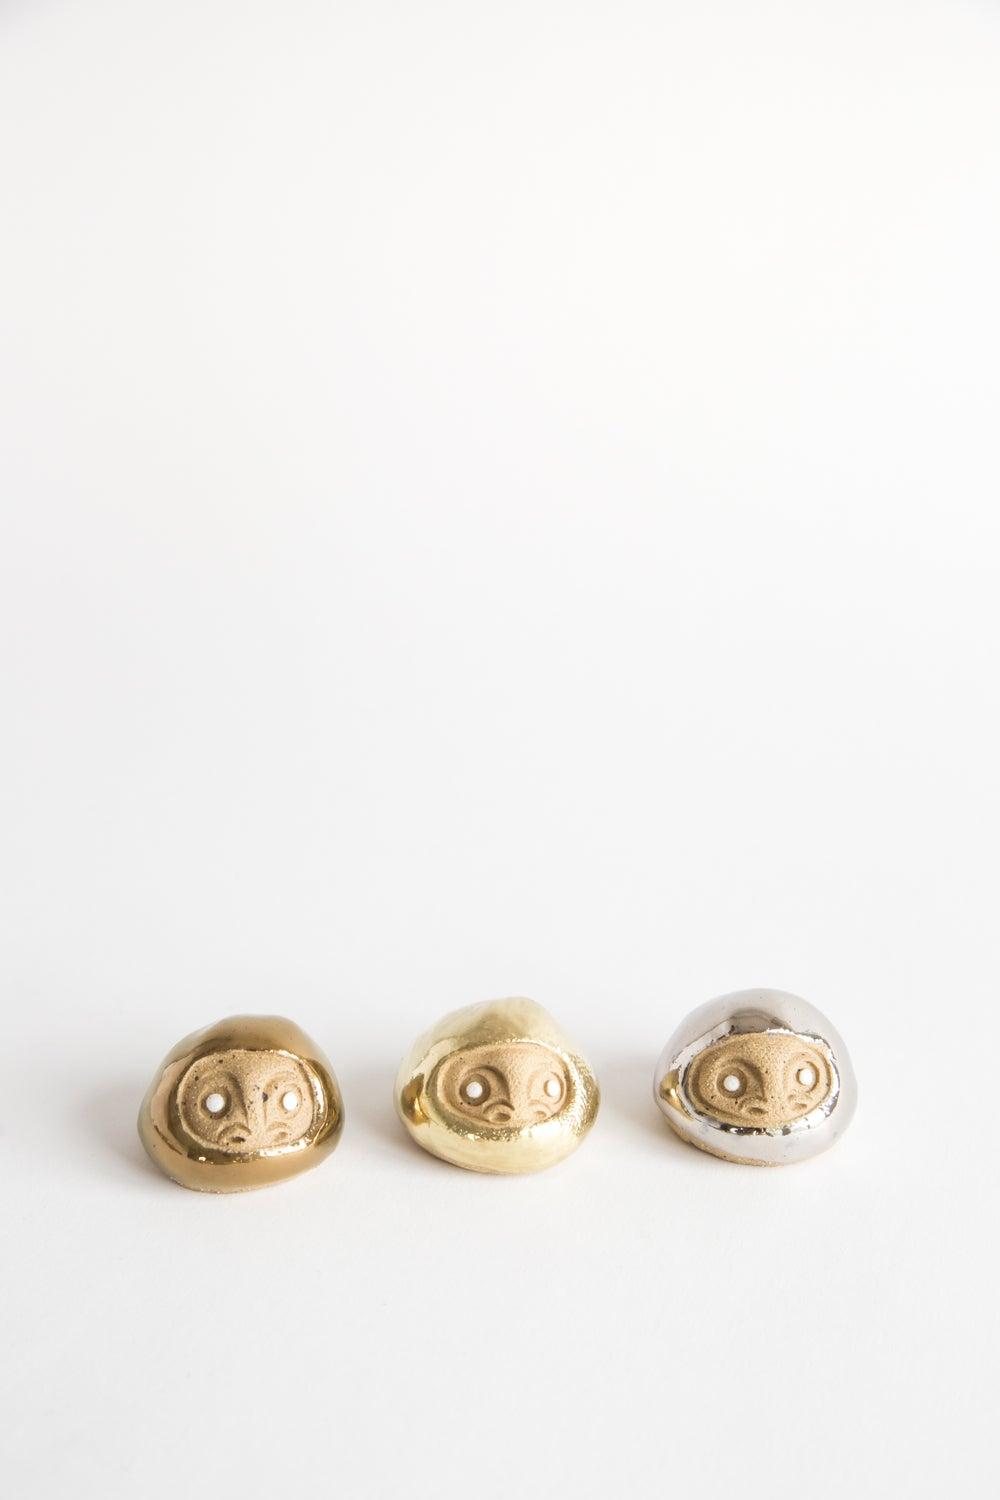 Image of Tiny Golden Daruma Wishing Dolls